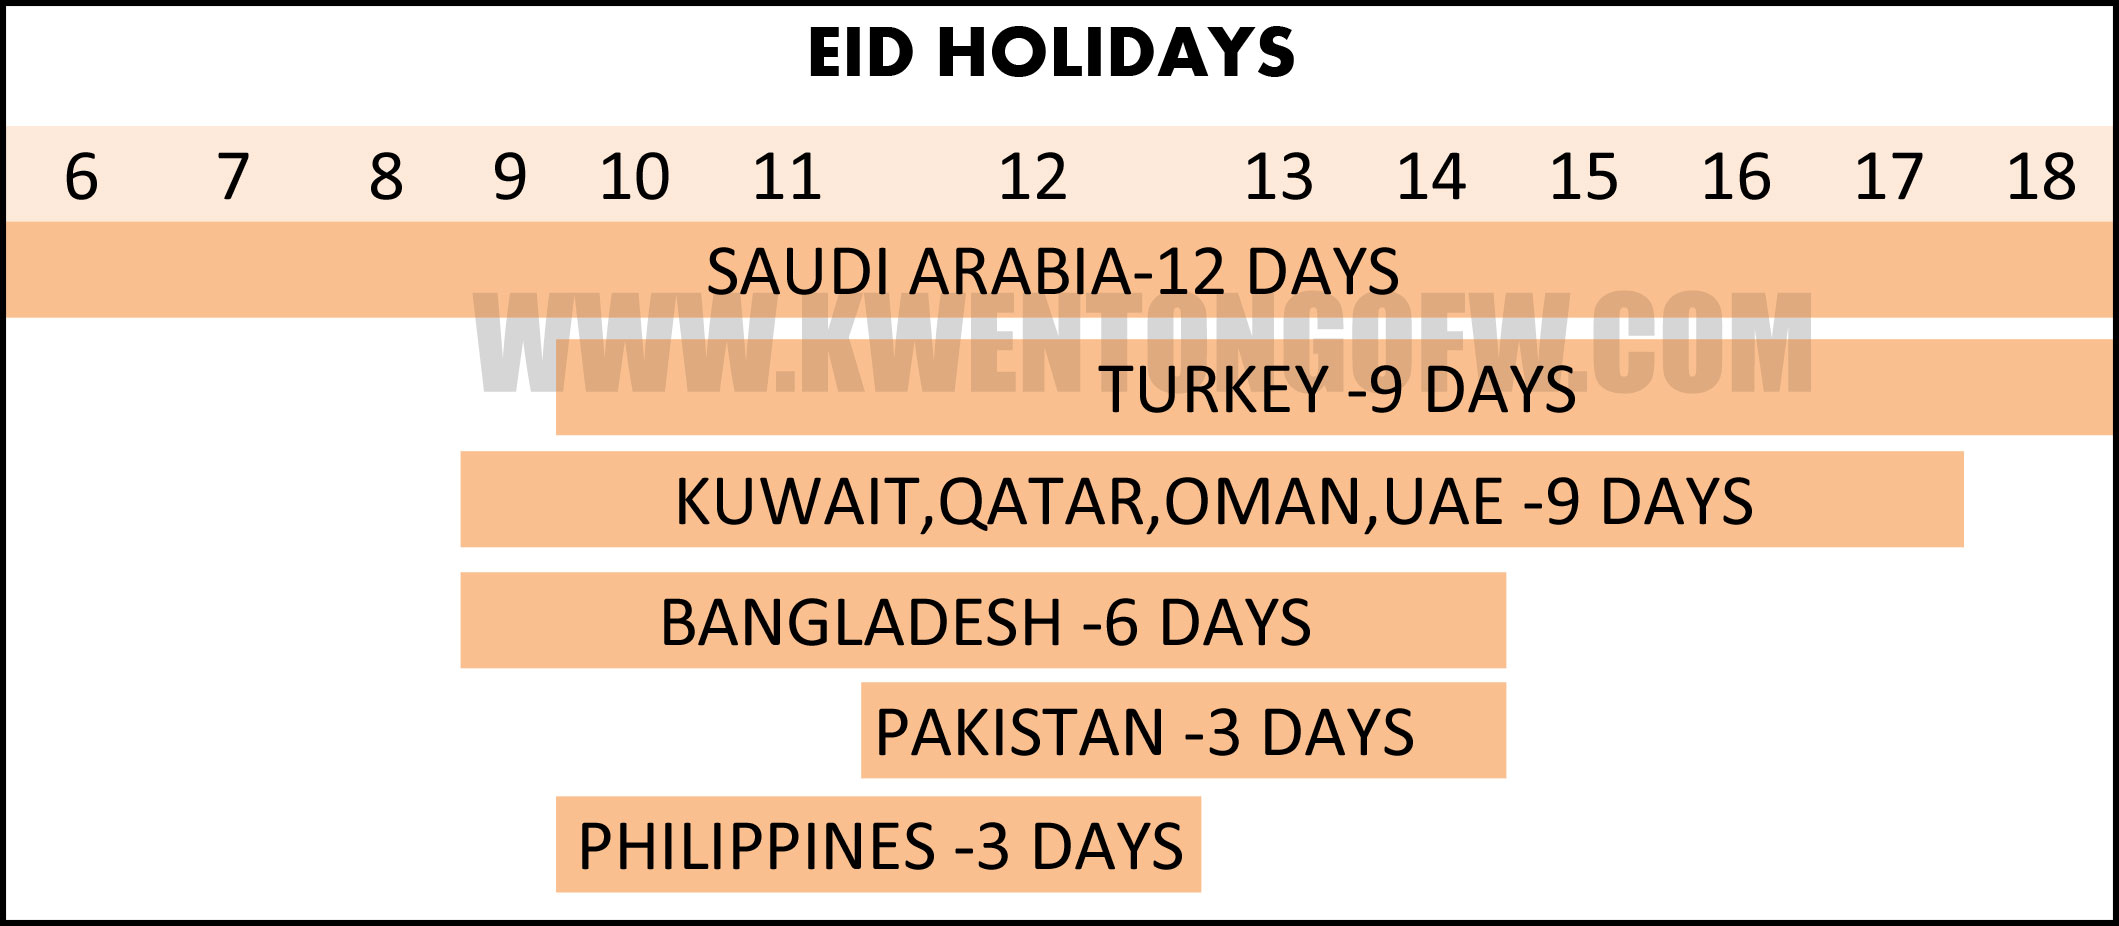 eid al adha holiday days of holidays by counrtries kwentong ofw